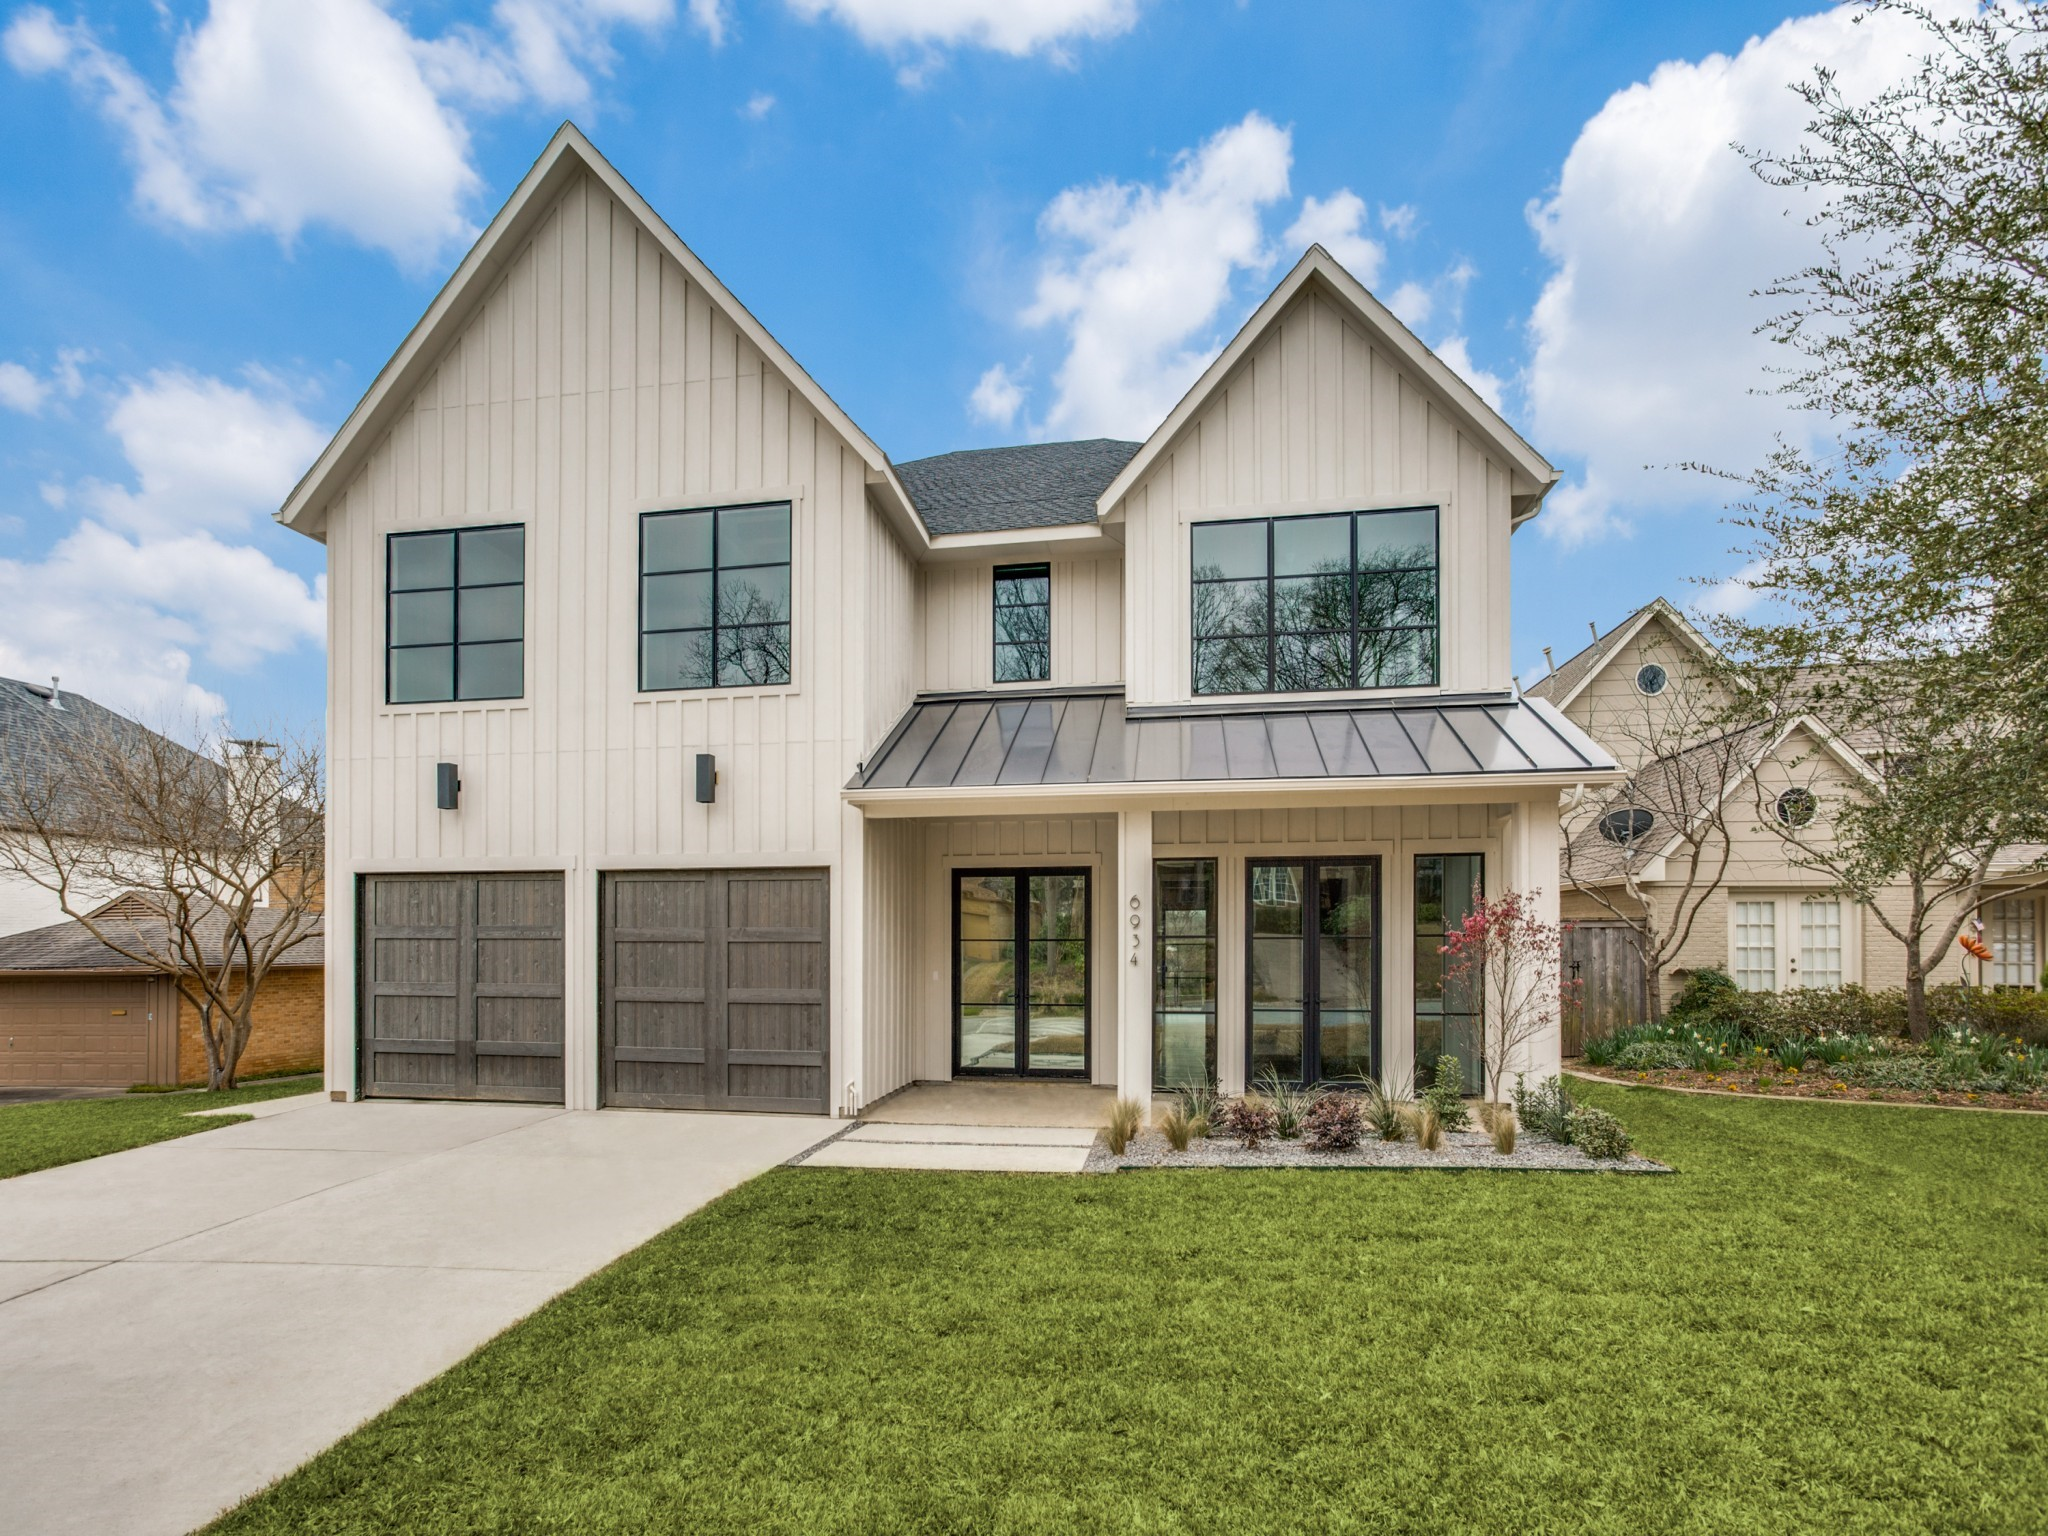 6934 La Vista Dr., Dallas, TX